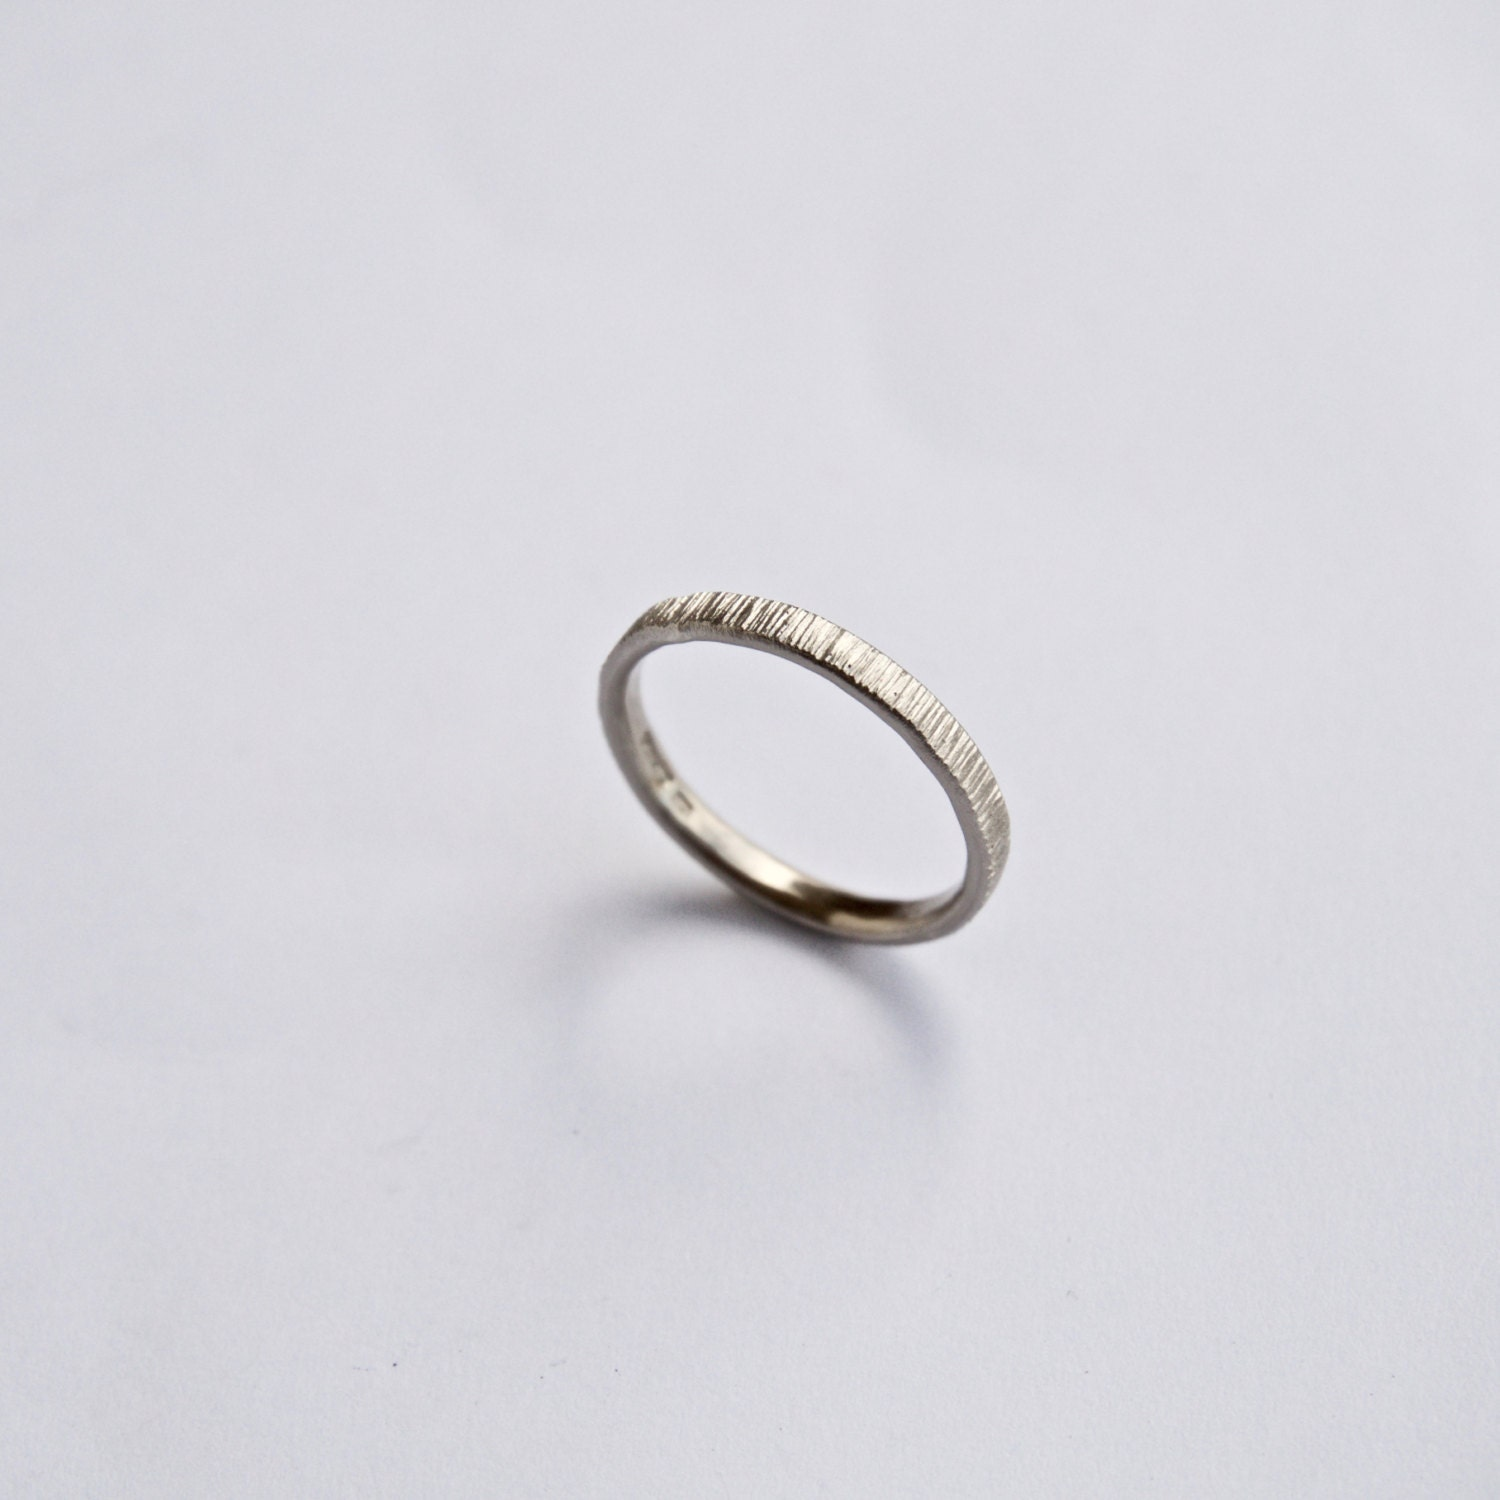 yellow band jewellery dainty of bands ring made simple gold thin anna rei wedding product solid